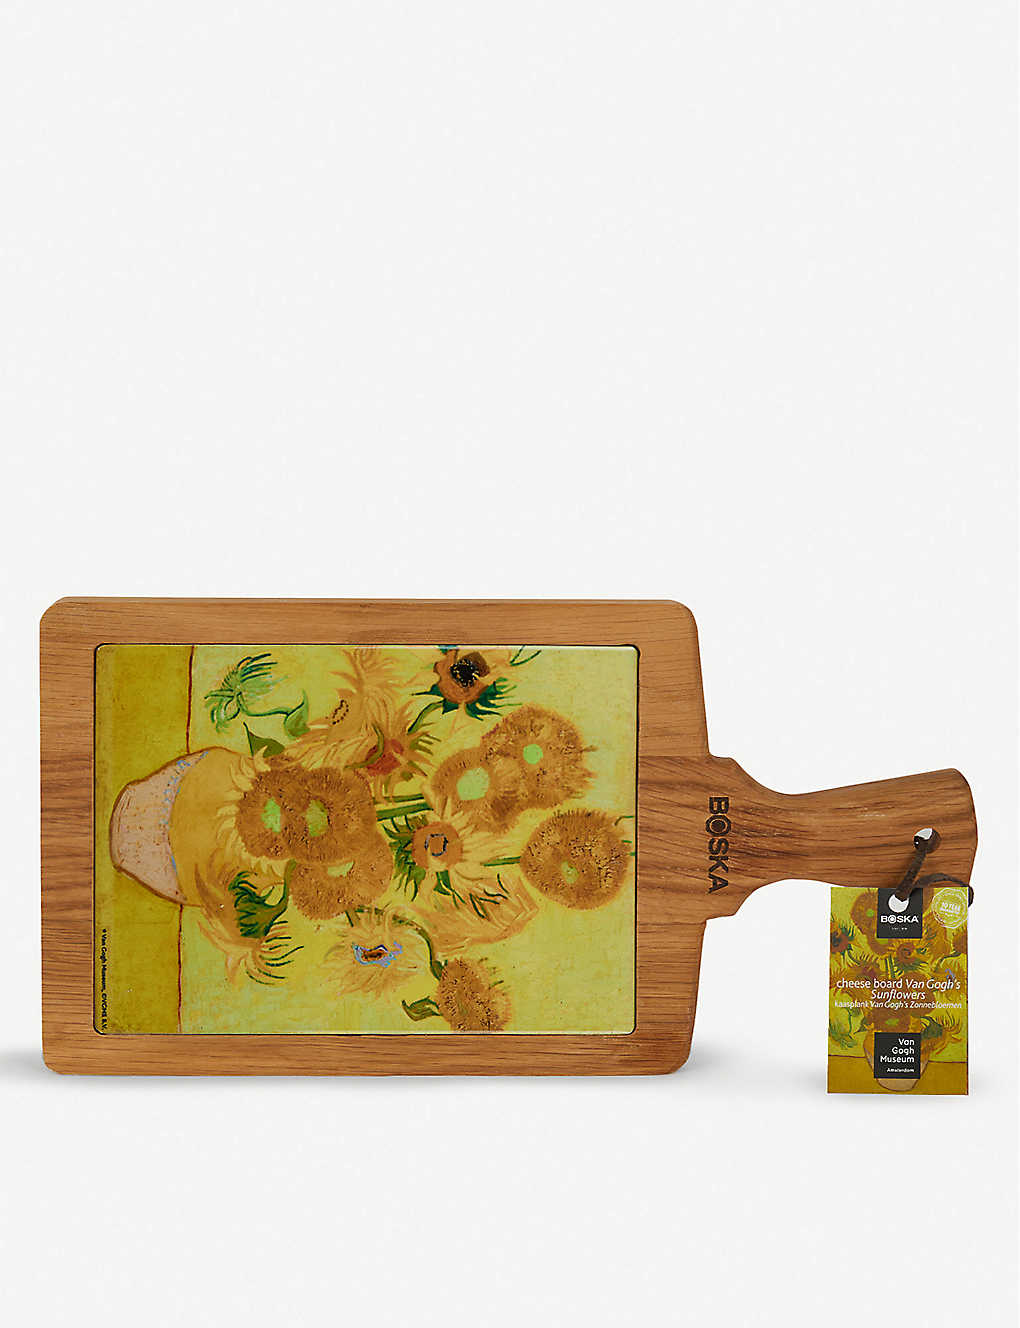 BOSKA: Van Gogh Sunflowers oak and ceramic cheese board